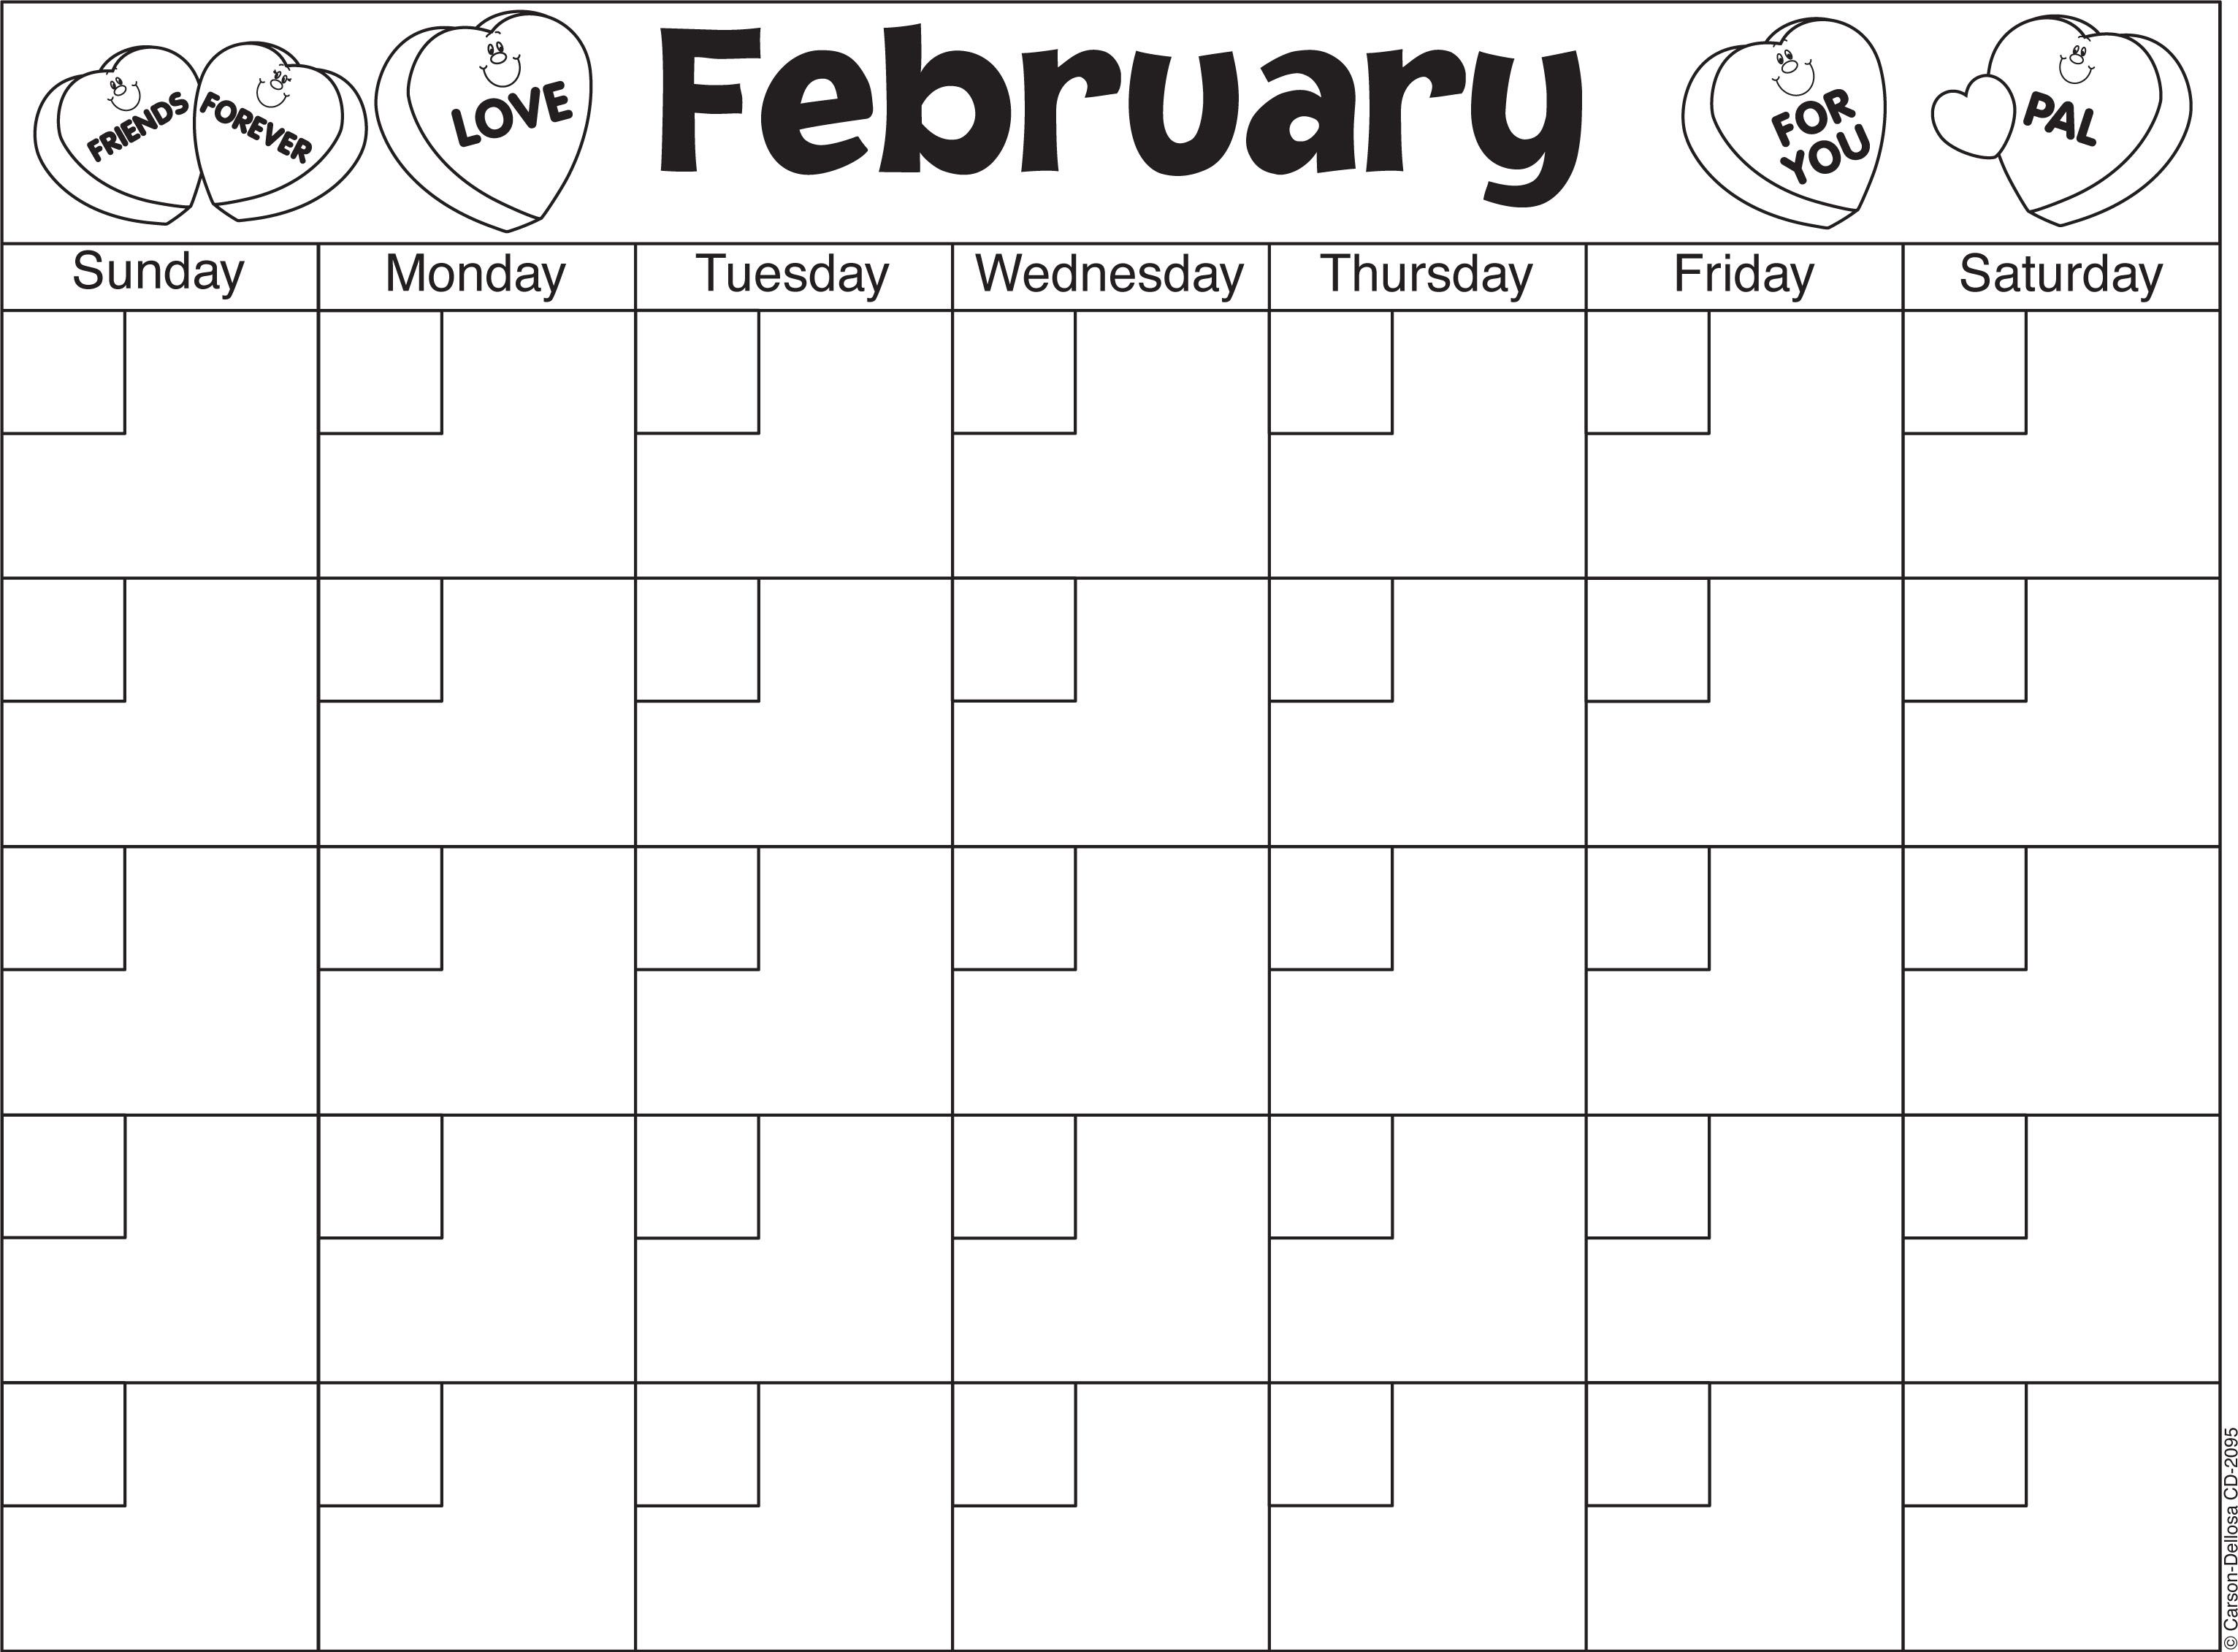 February Calendar Template Great Way To Practice Counting